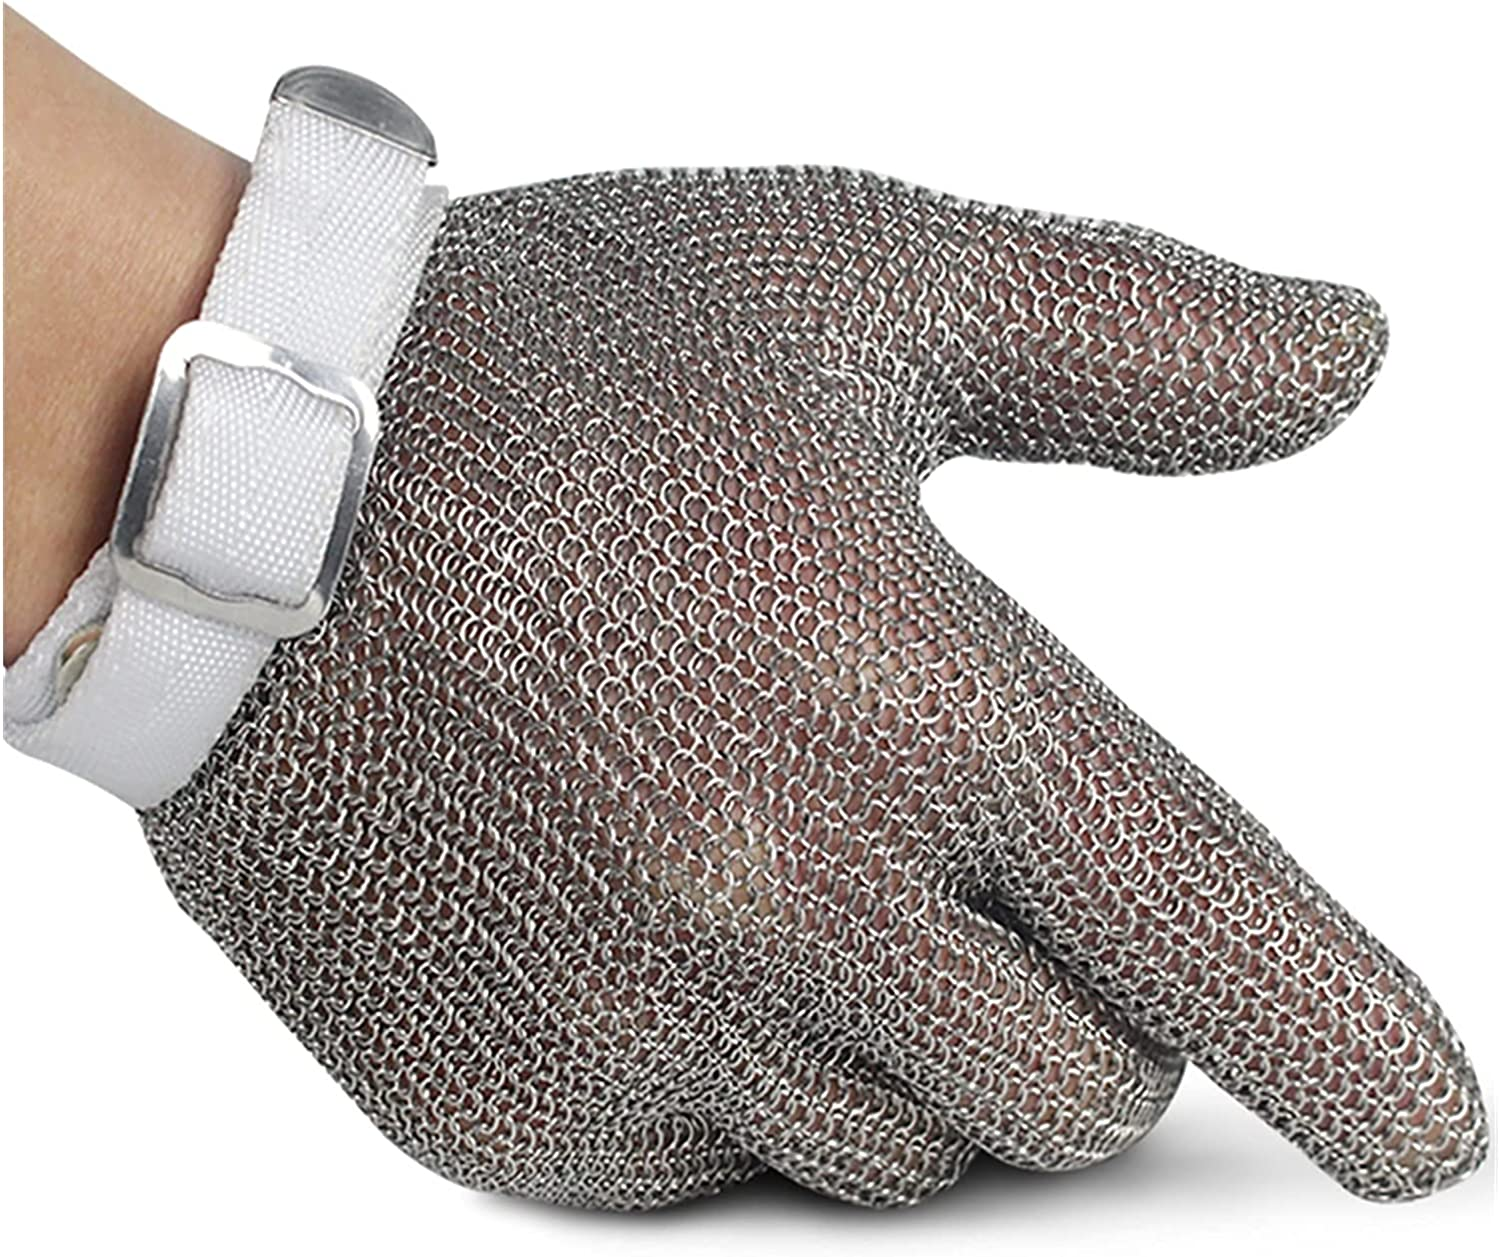 Easy-to-use Anti-Cut Challenge the lowest price Gloves Cut-Resistant Safety Work with St